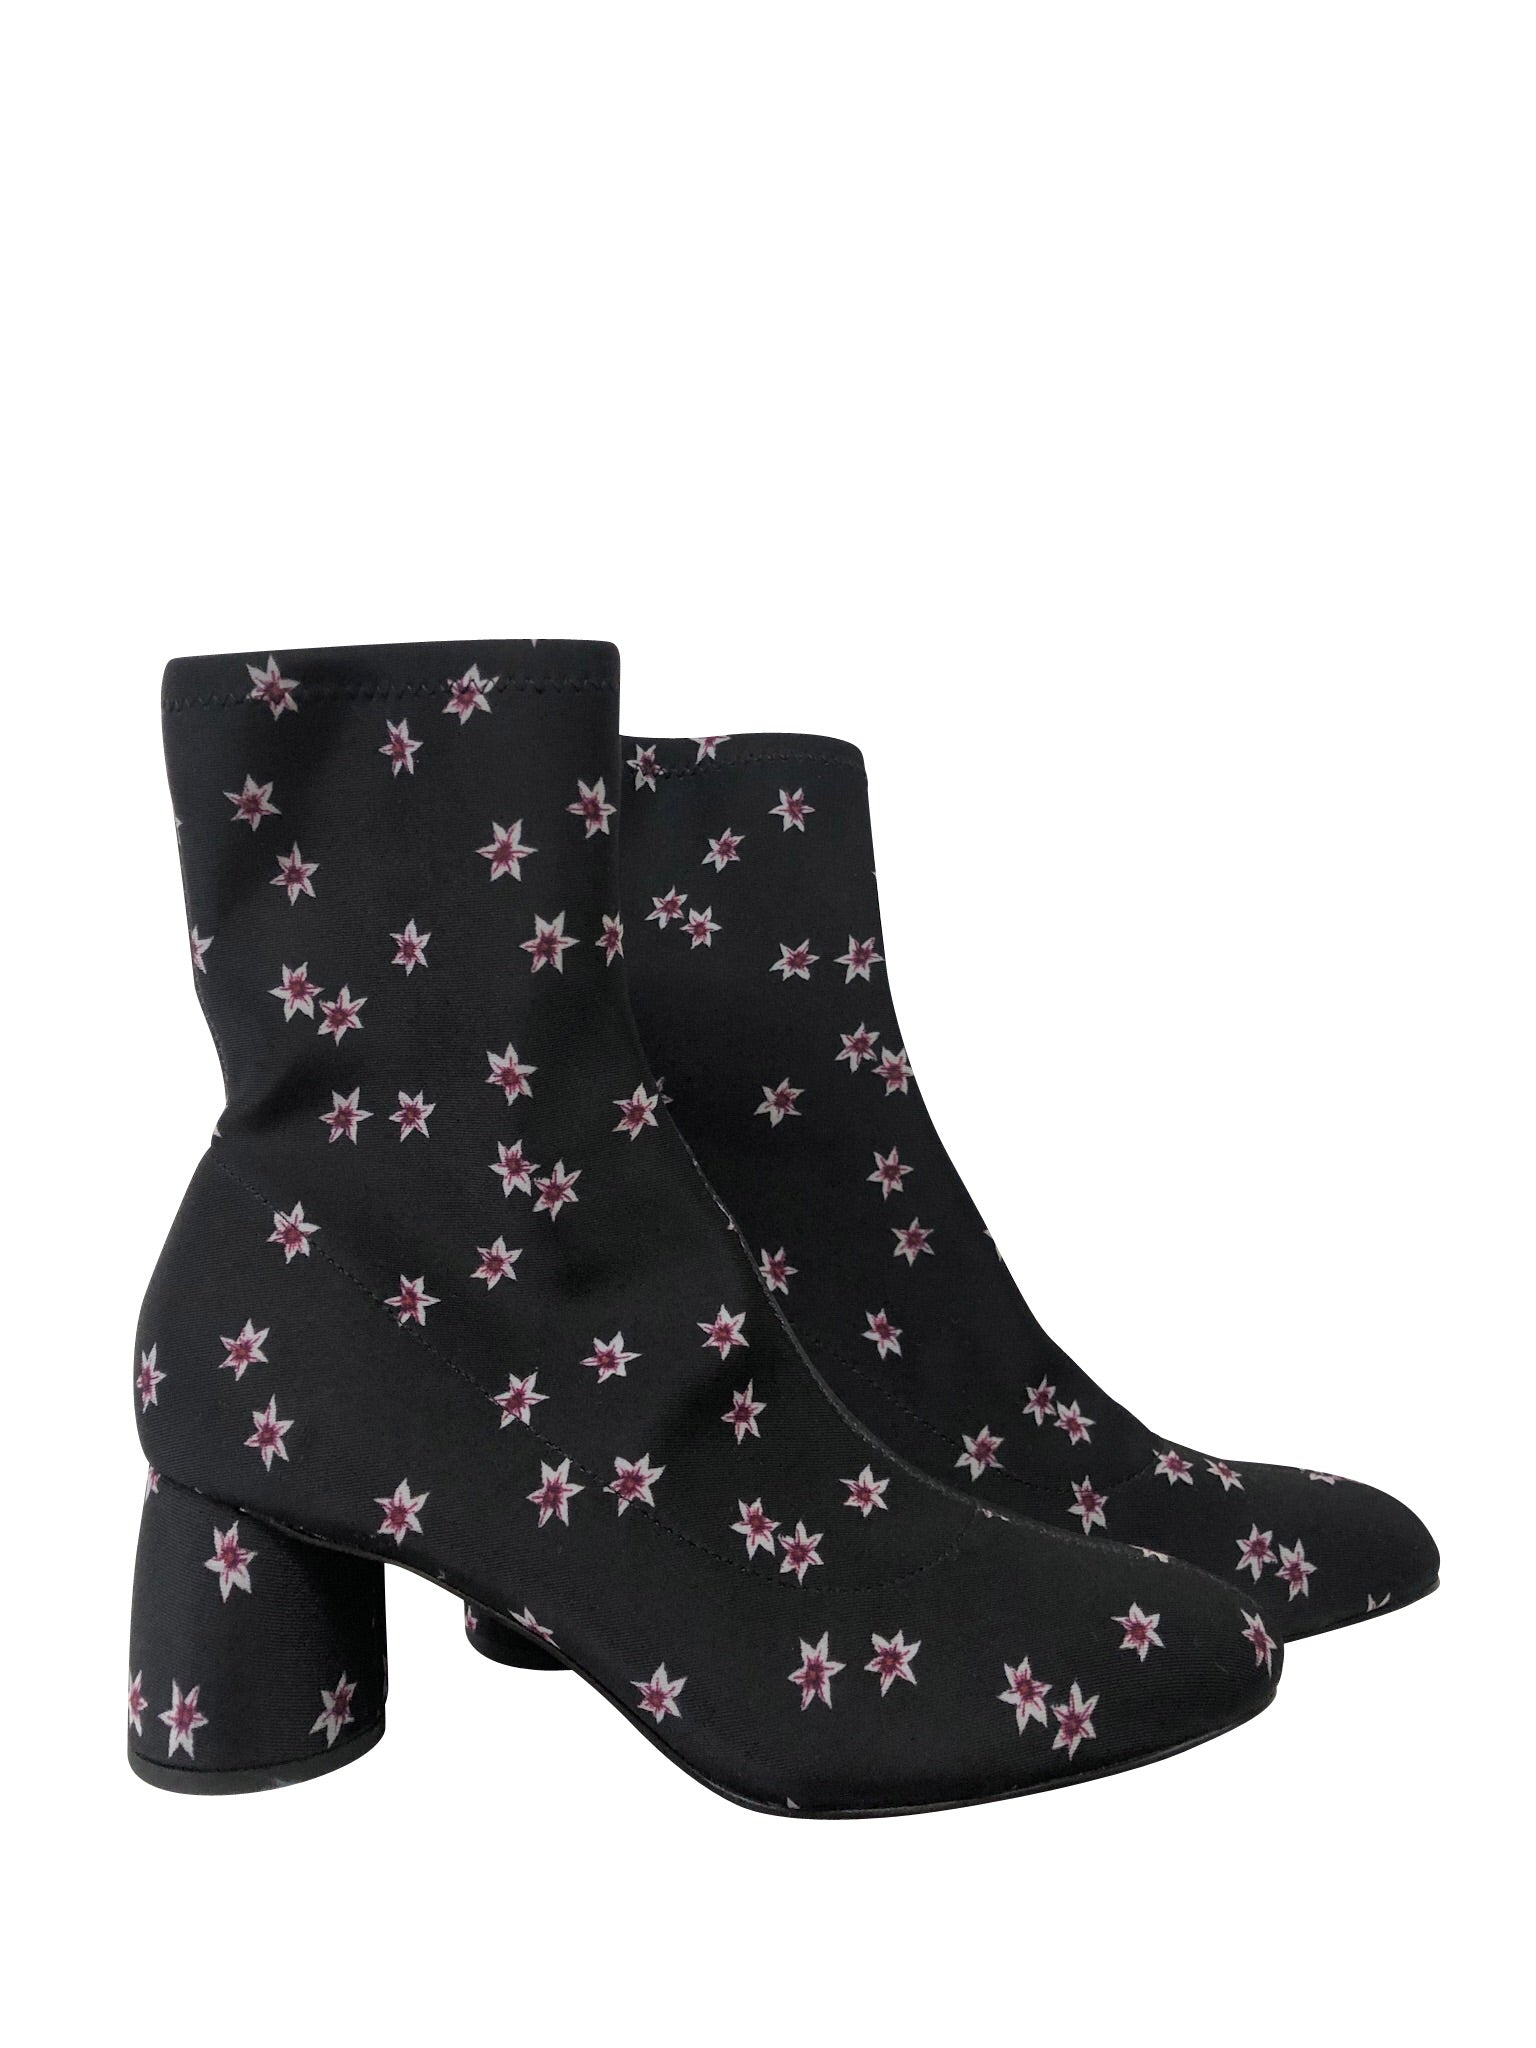 & Other Stories Star Flower Boots- new